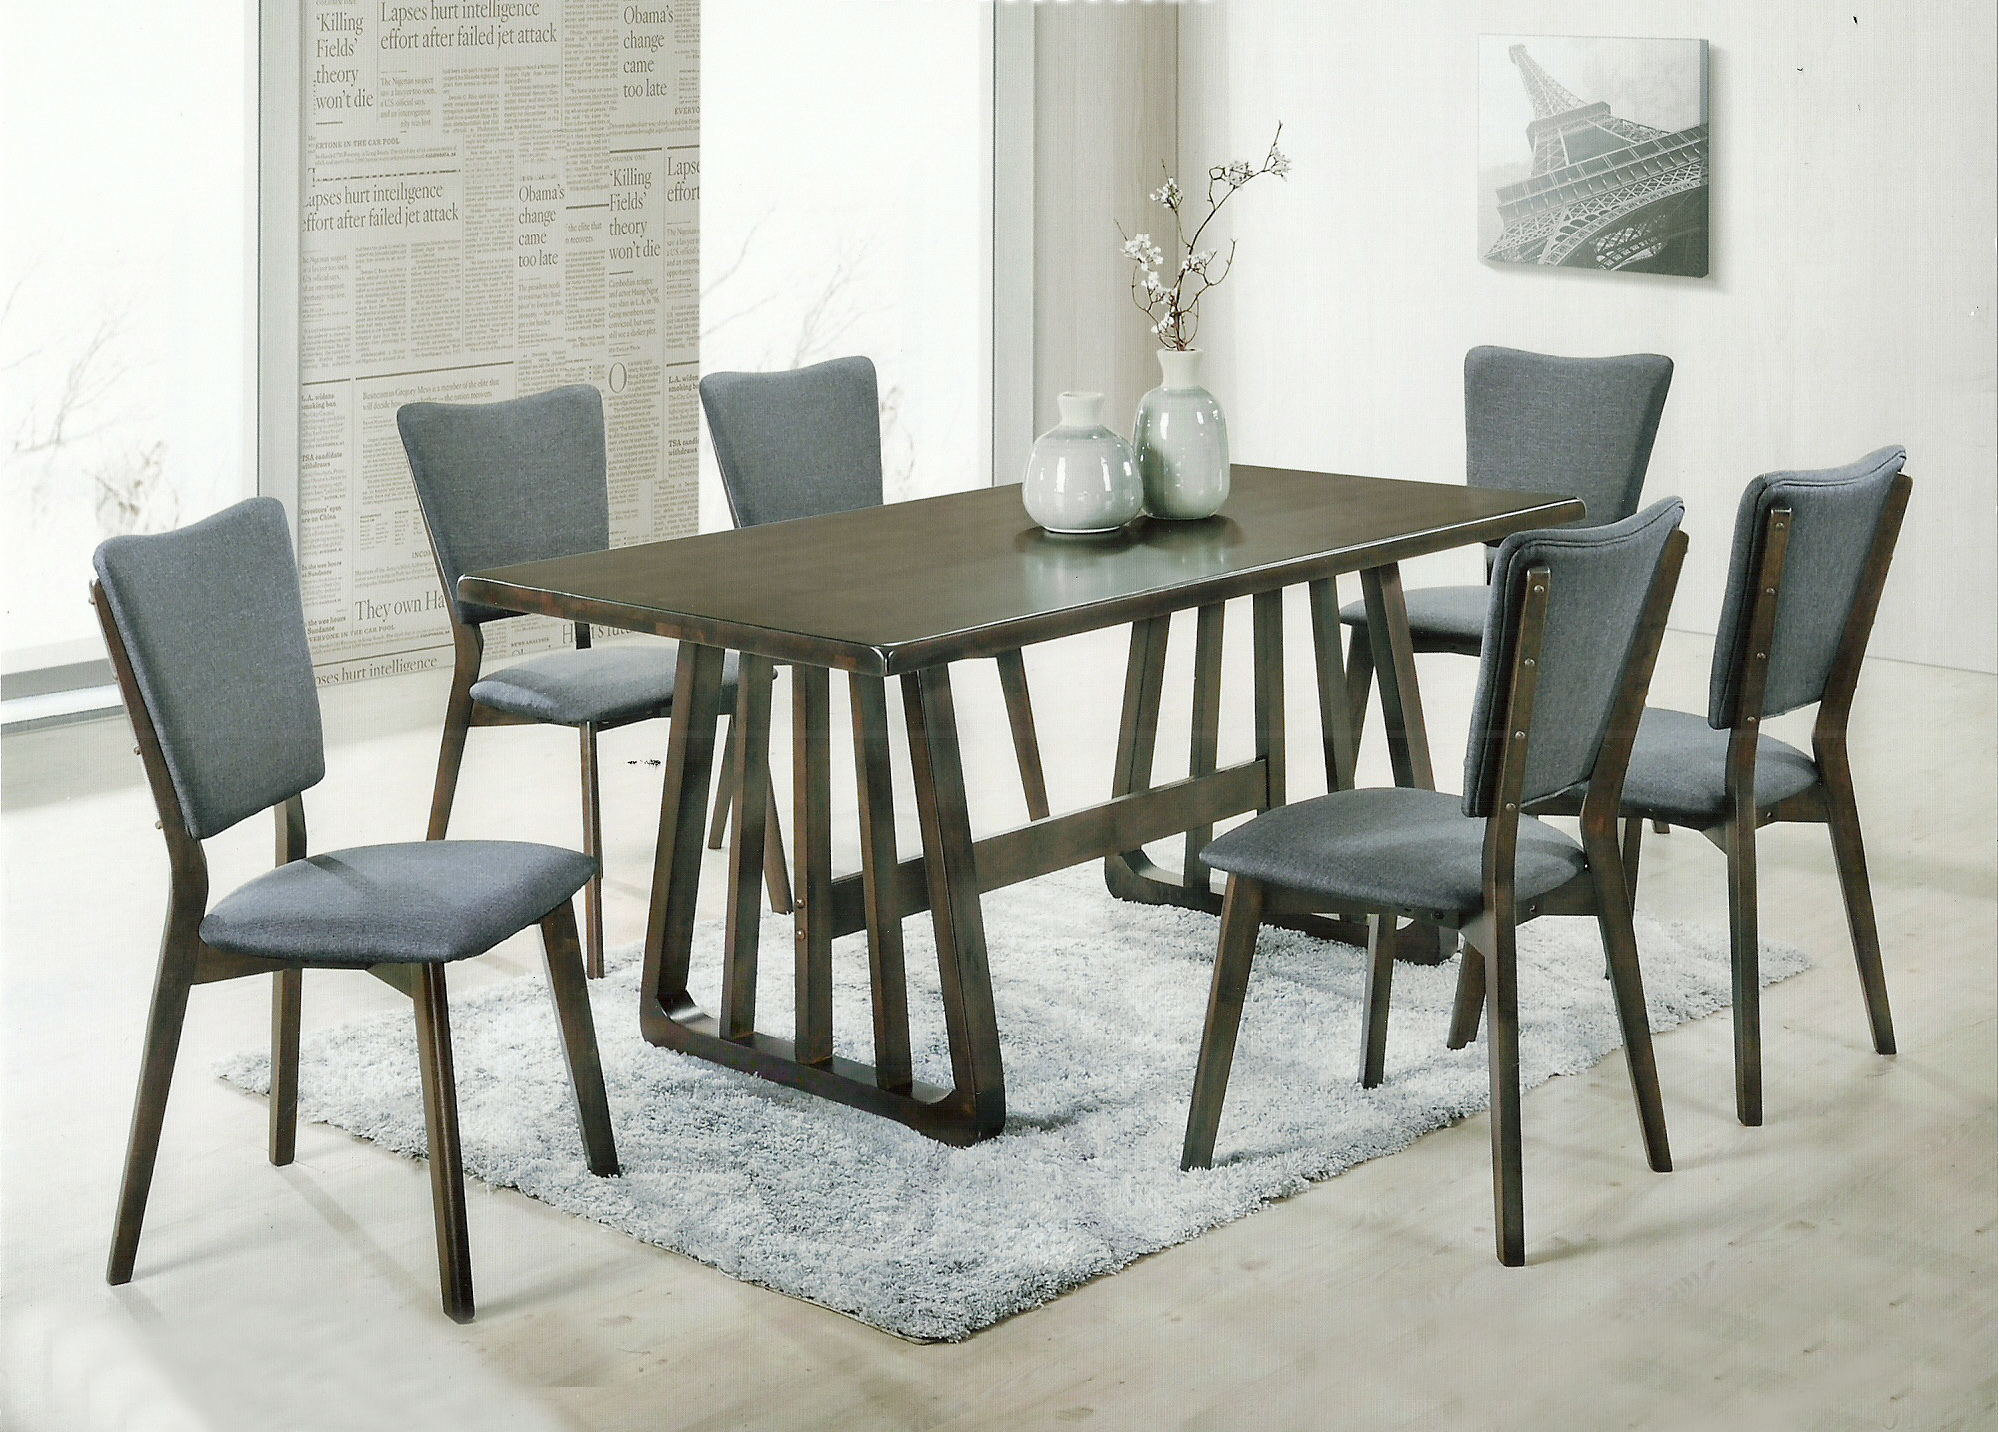 Dining set 980050011 blue a.jpg